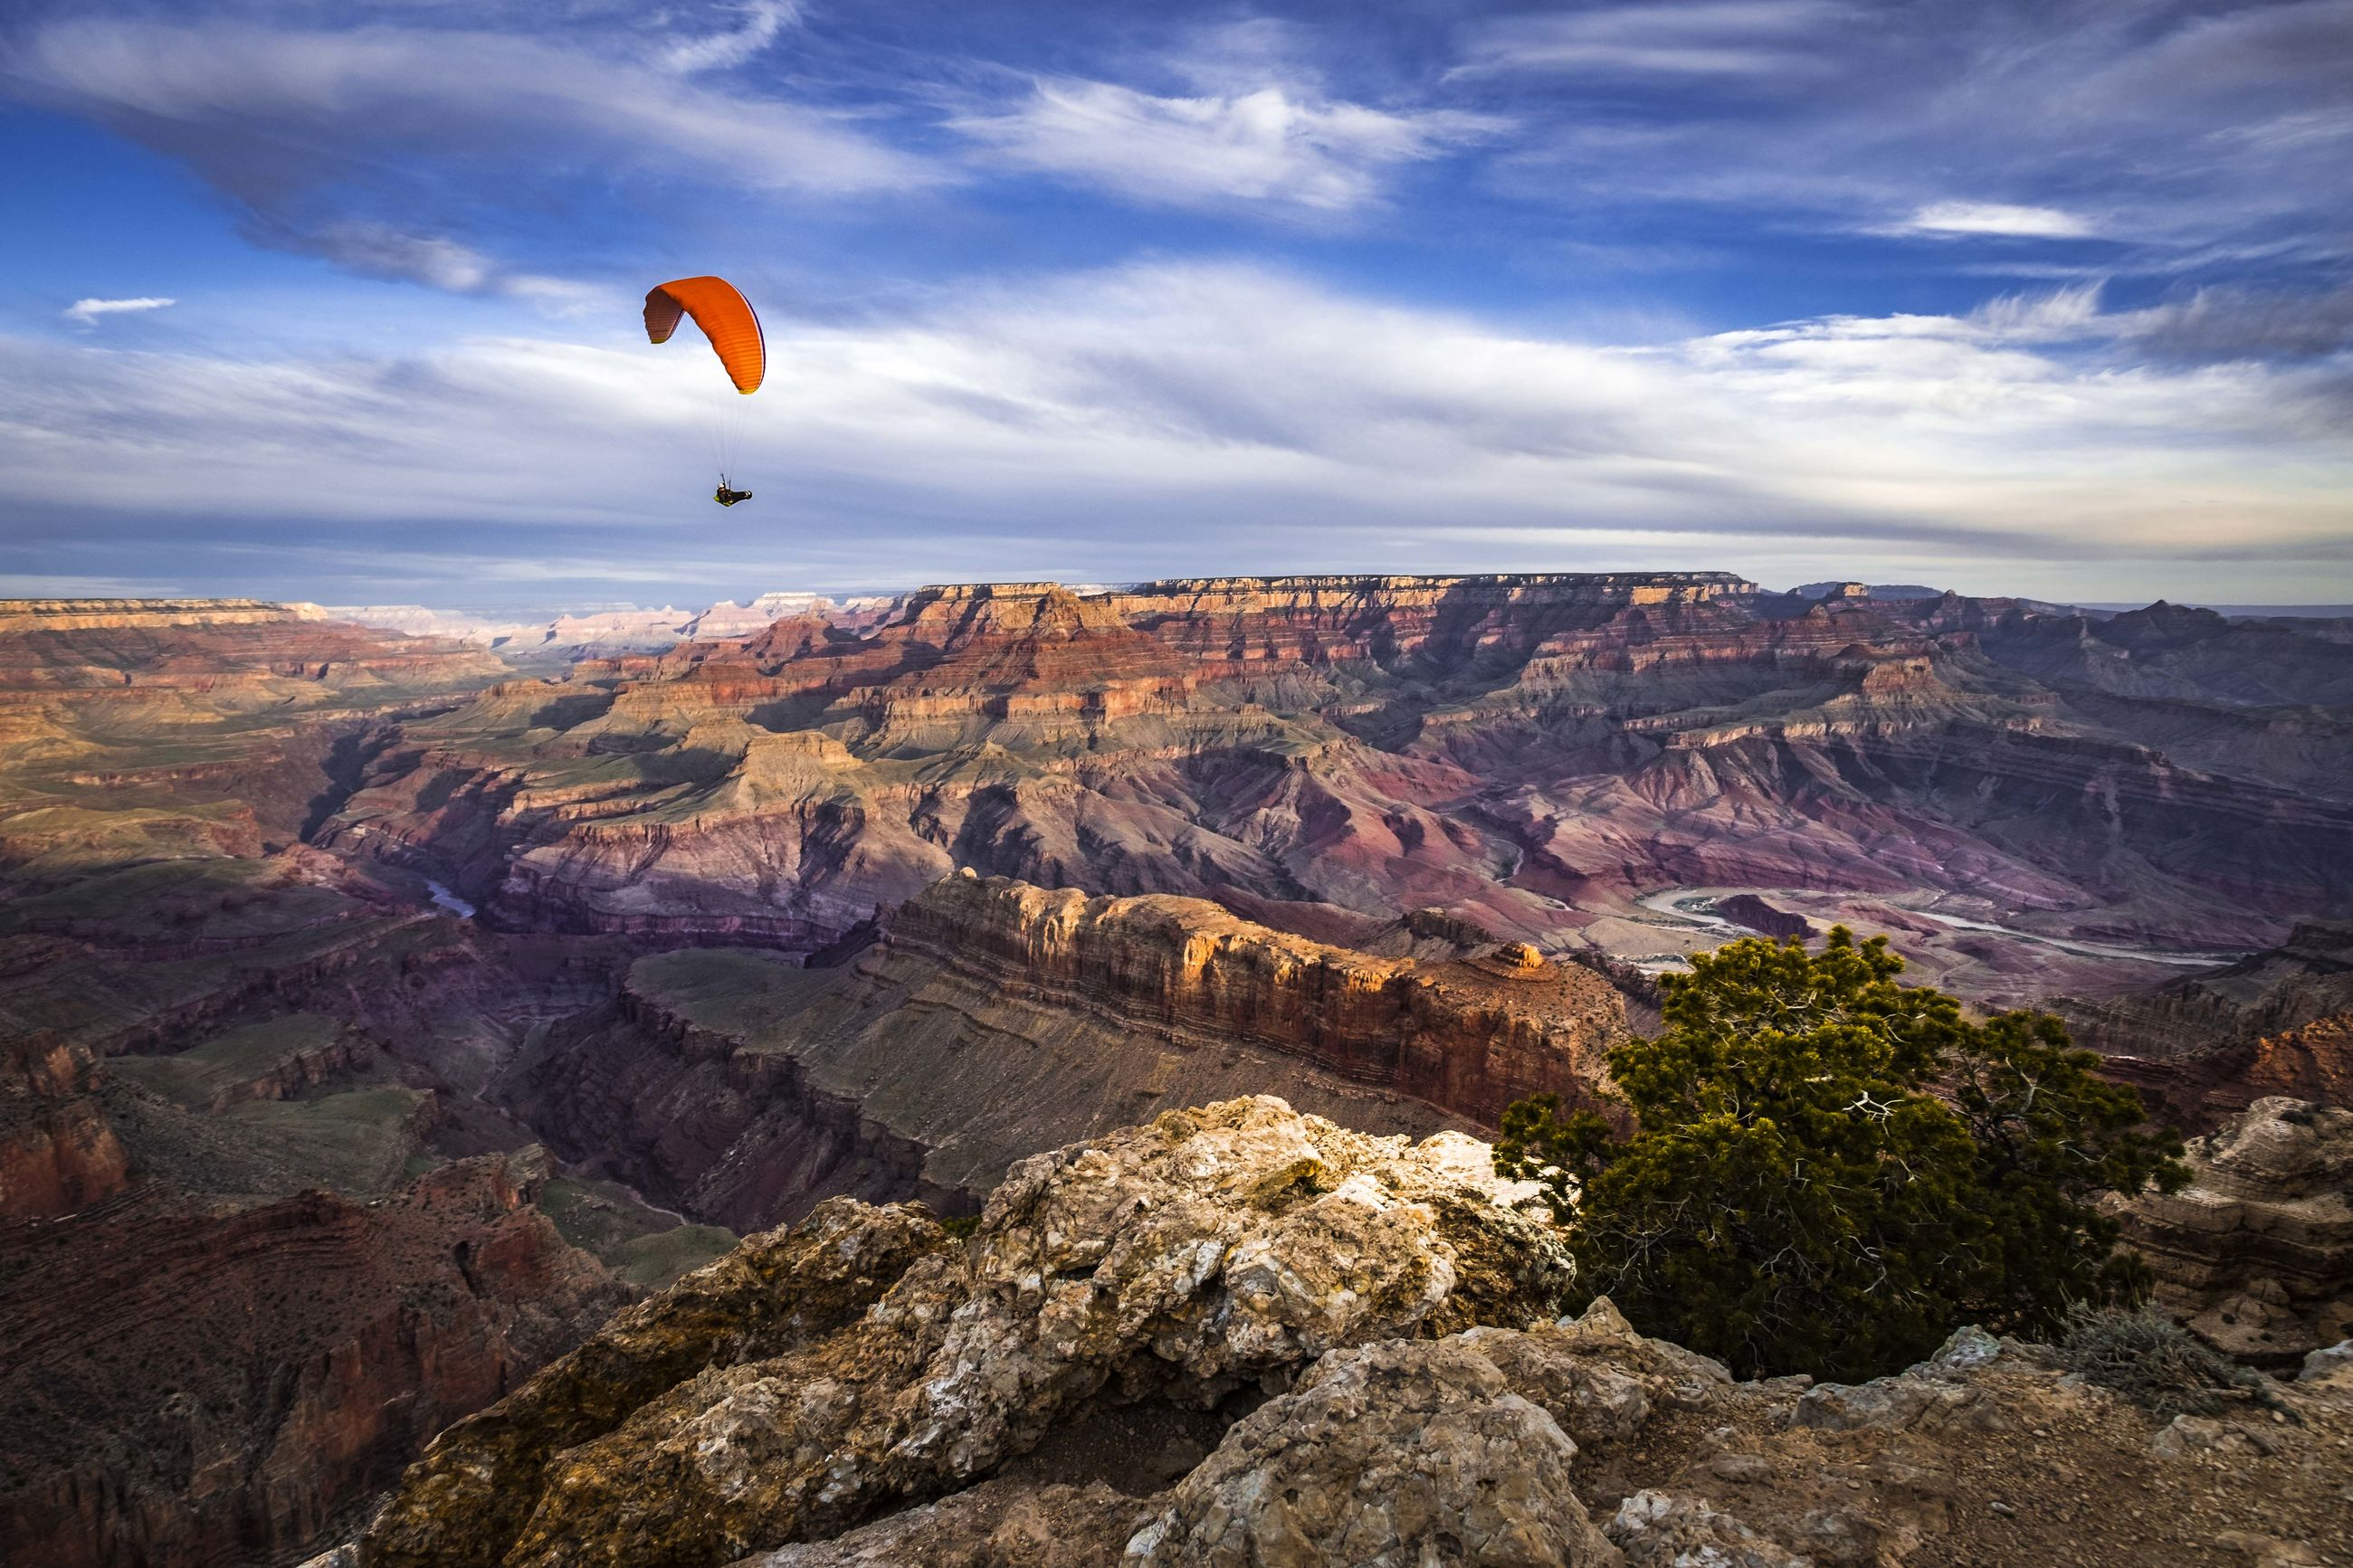 adventure, beauty in nature, scenics - nature, cloud - sky, extreme sports, mountain, sky, parachute, non-urban scene, mid-air, sport, environment, flying, paragliding, landscape, tranquil scene, leisure activity, nature, tranquility, rock, mountain range, freedom, outdoors